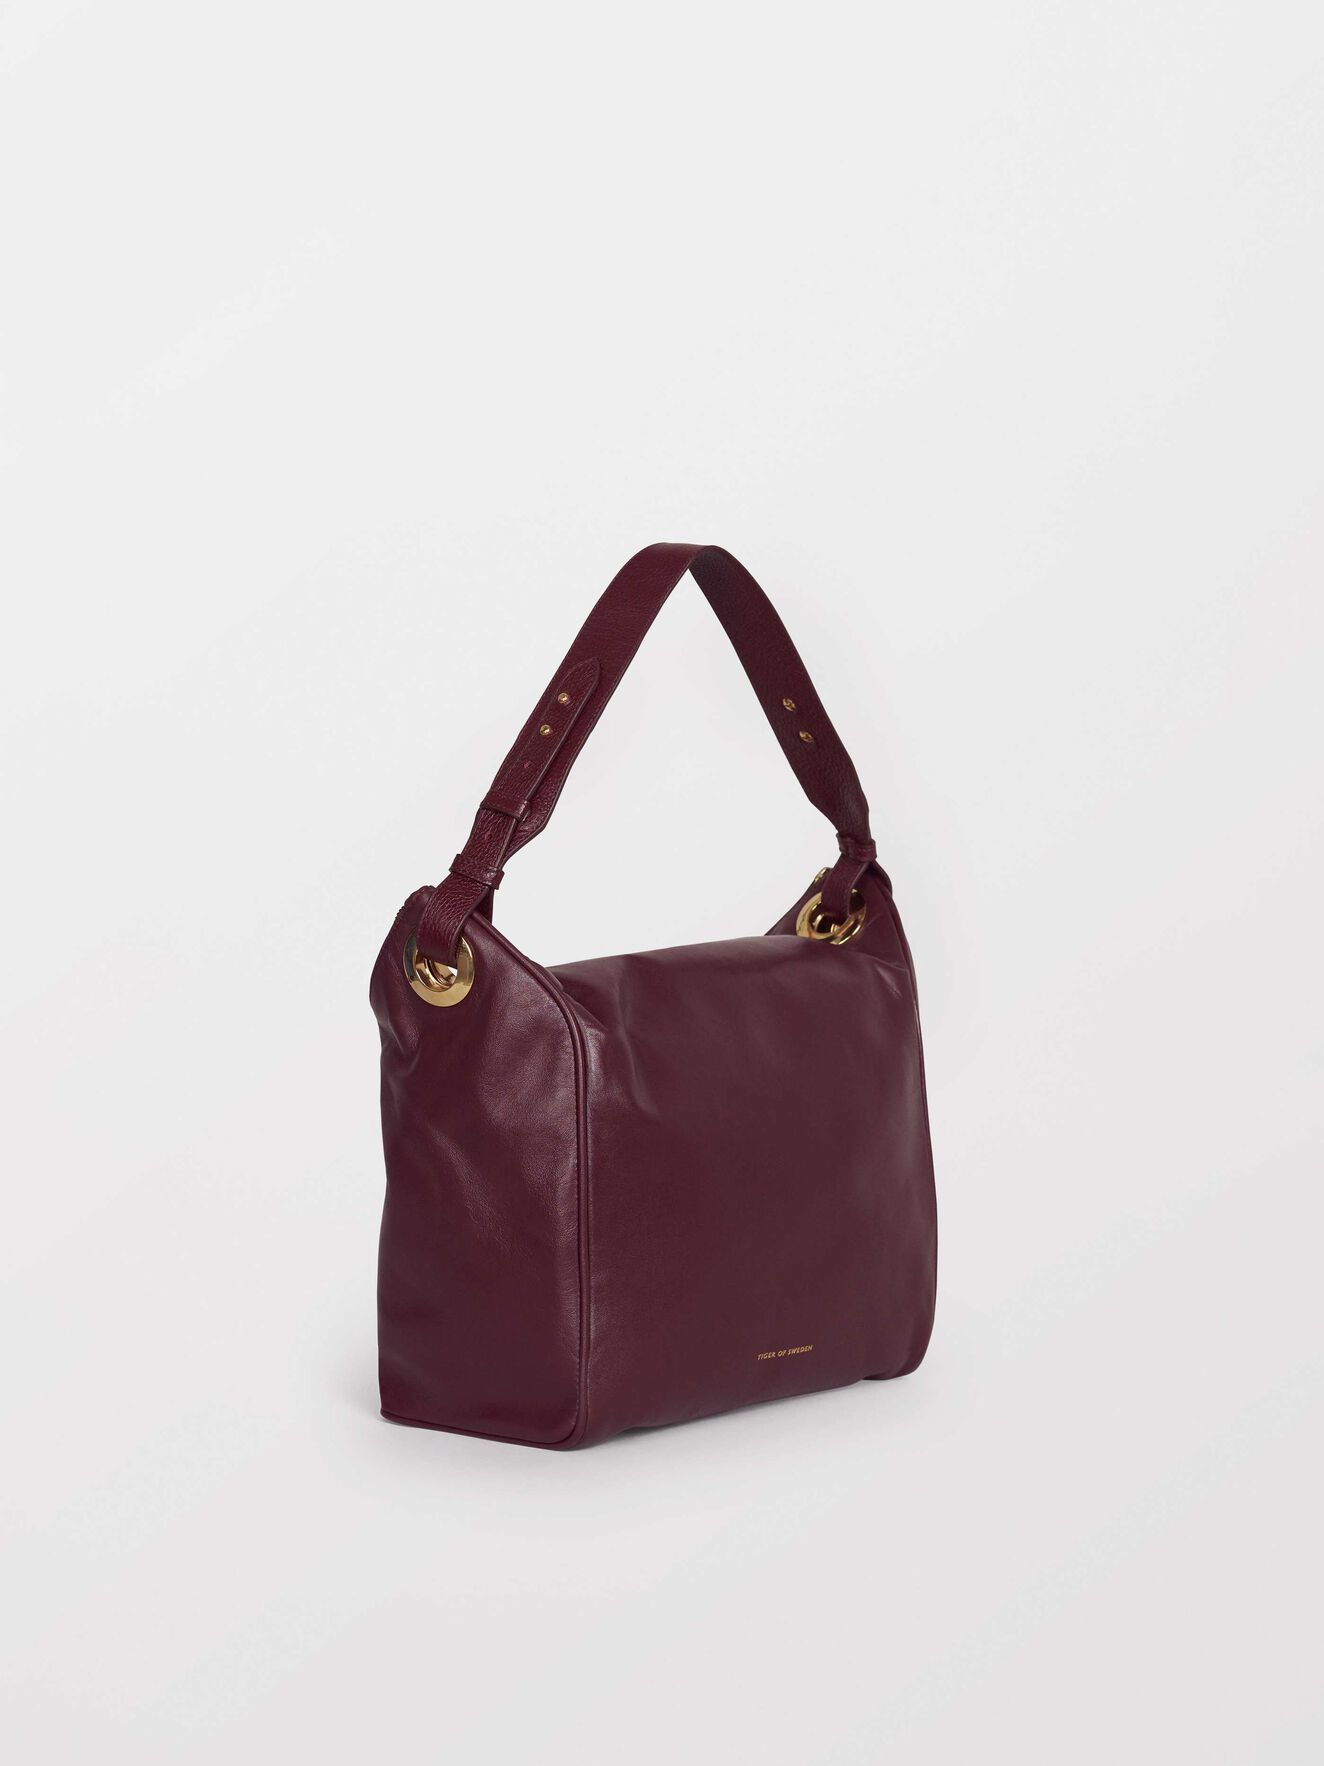 Ockiello Bag in Noon Plum from Tiger of Sweden